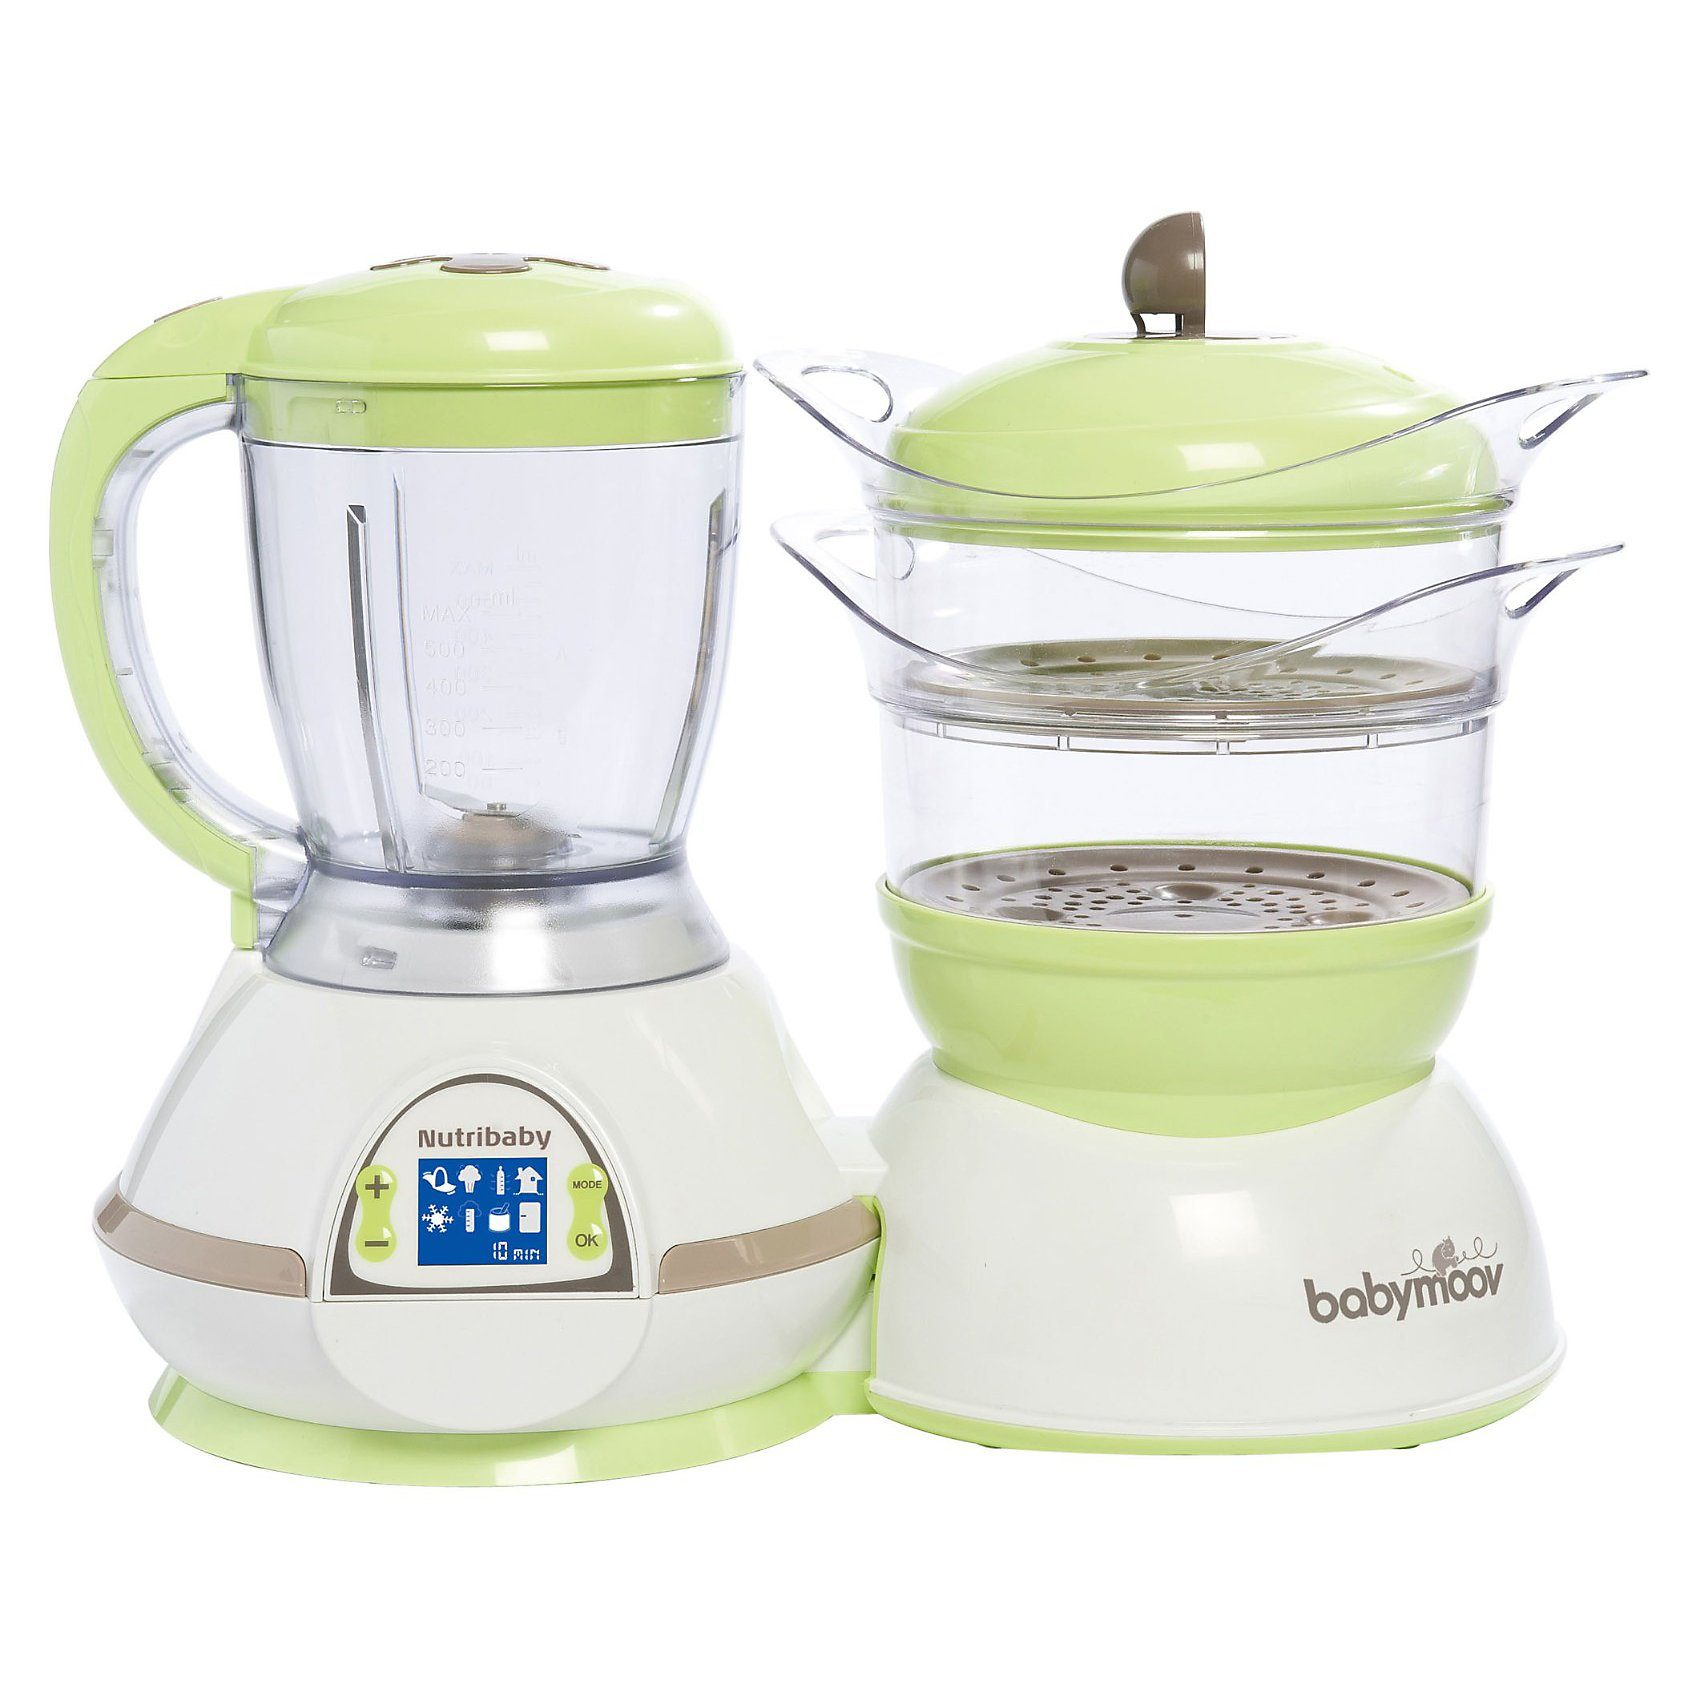 Babymoov Multifunktionsgerät Nutribaby 5 in 1, Zen